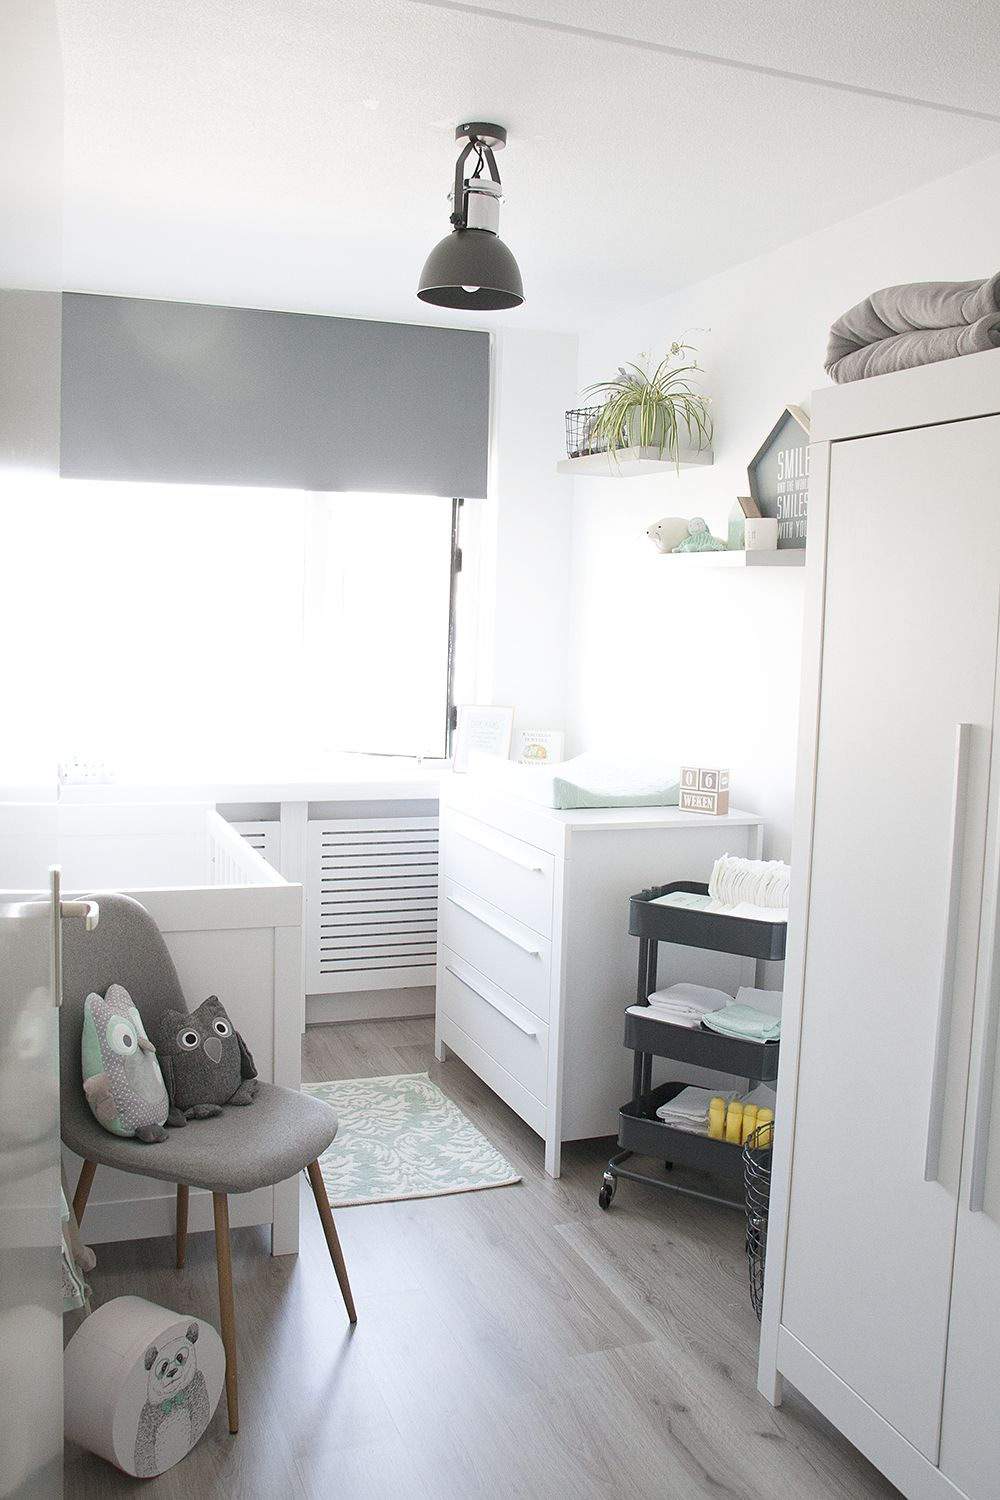 karretje ikea naast commode babykamer pinterest habitaciones bebes bebe y habitaci n beb s. Black Bedroom Furniture Sets. Home Design Ideas